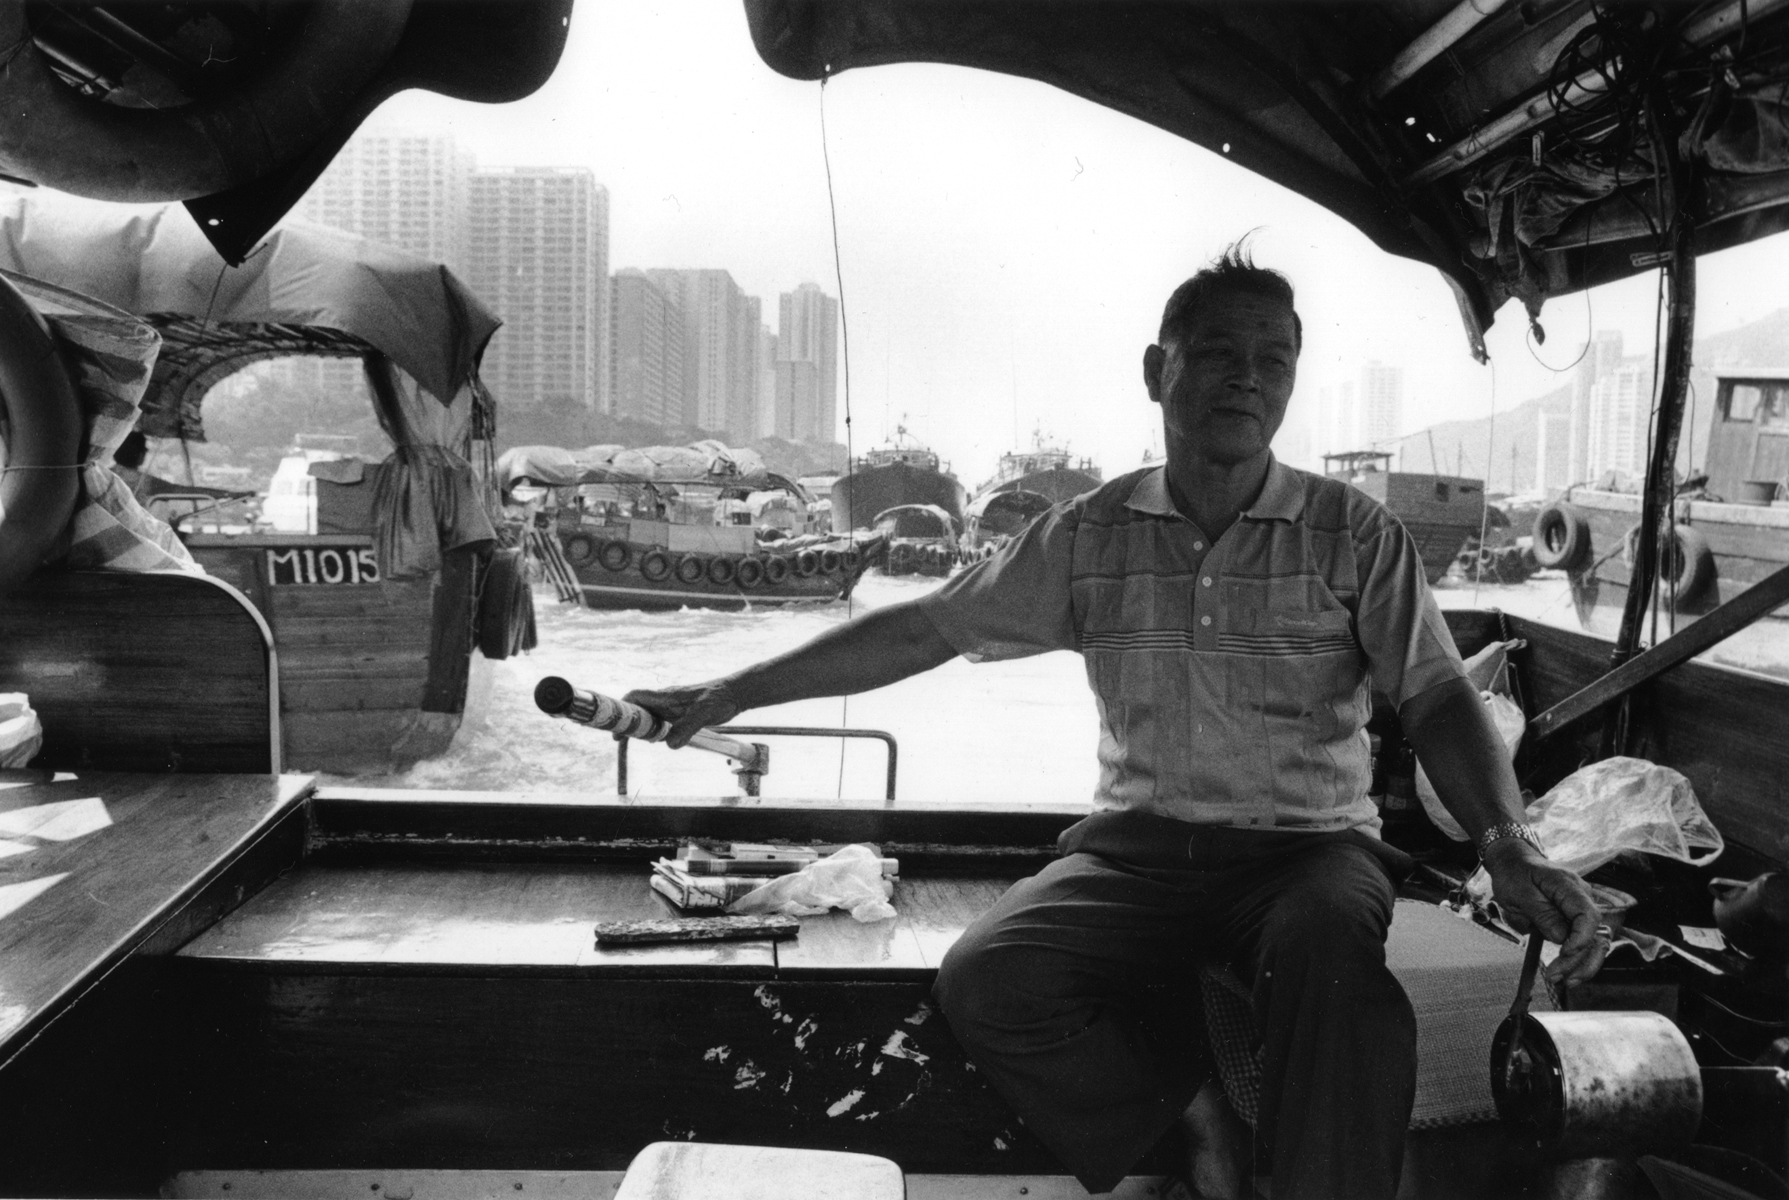 A Tanka villager sells tours around Aberdeen Harbour. Aberdeen Harbour,  located on the south shore of Hong Kong Island, is known for its floating villages and the Tanka people, who are generally associated with the fishing industry. The government of Hong Kong has built high-rise buildings along Aberdeen Harbour to encourage its boat dwelling community to leave their junkets, yet many refuse to trade their way of life for a more modern life-style.Additionally, Hong Kong means {quote}fragrant Harbor{quote} and it was Aberdeen where incense trees from the New Territories used to be transferred for export to other cities in China..Aberdeen Harbour, Hong Kong